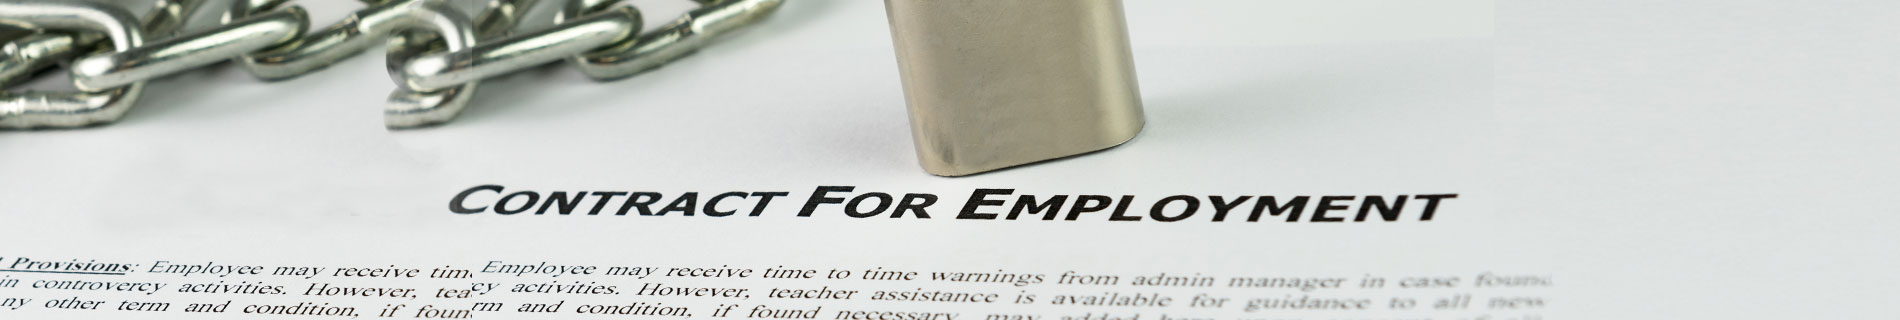 Pleasanton Employment Contracts | Benefits, Compensation & Termination